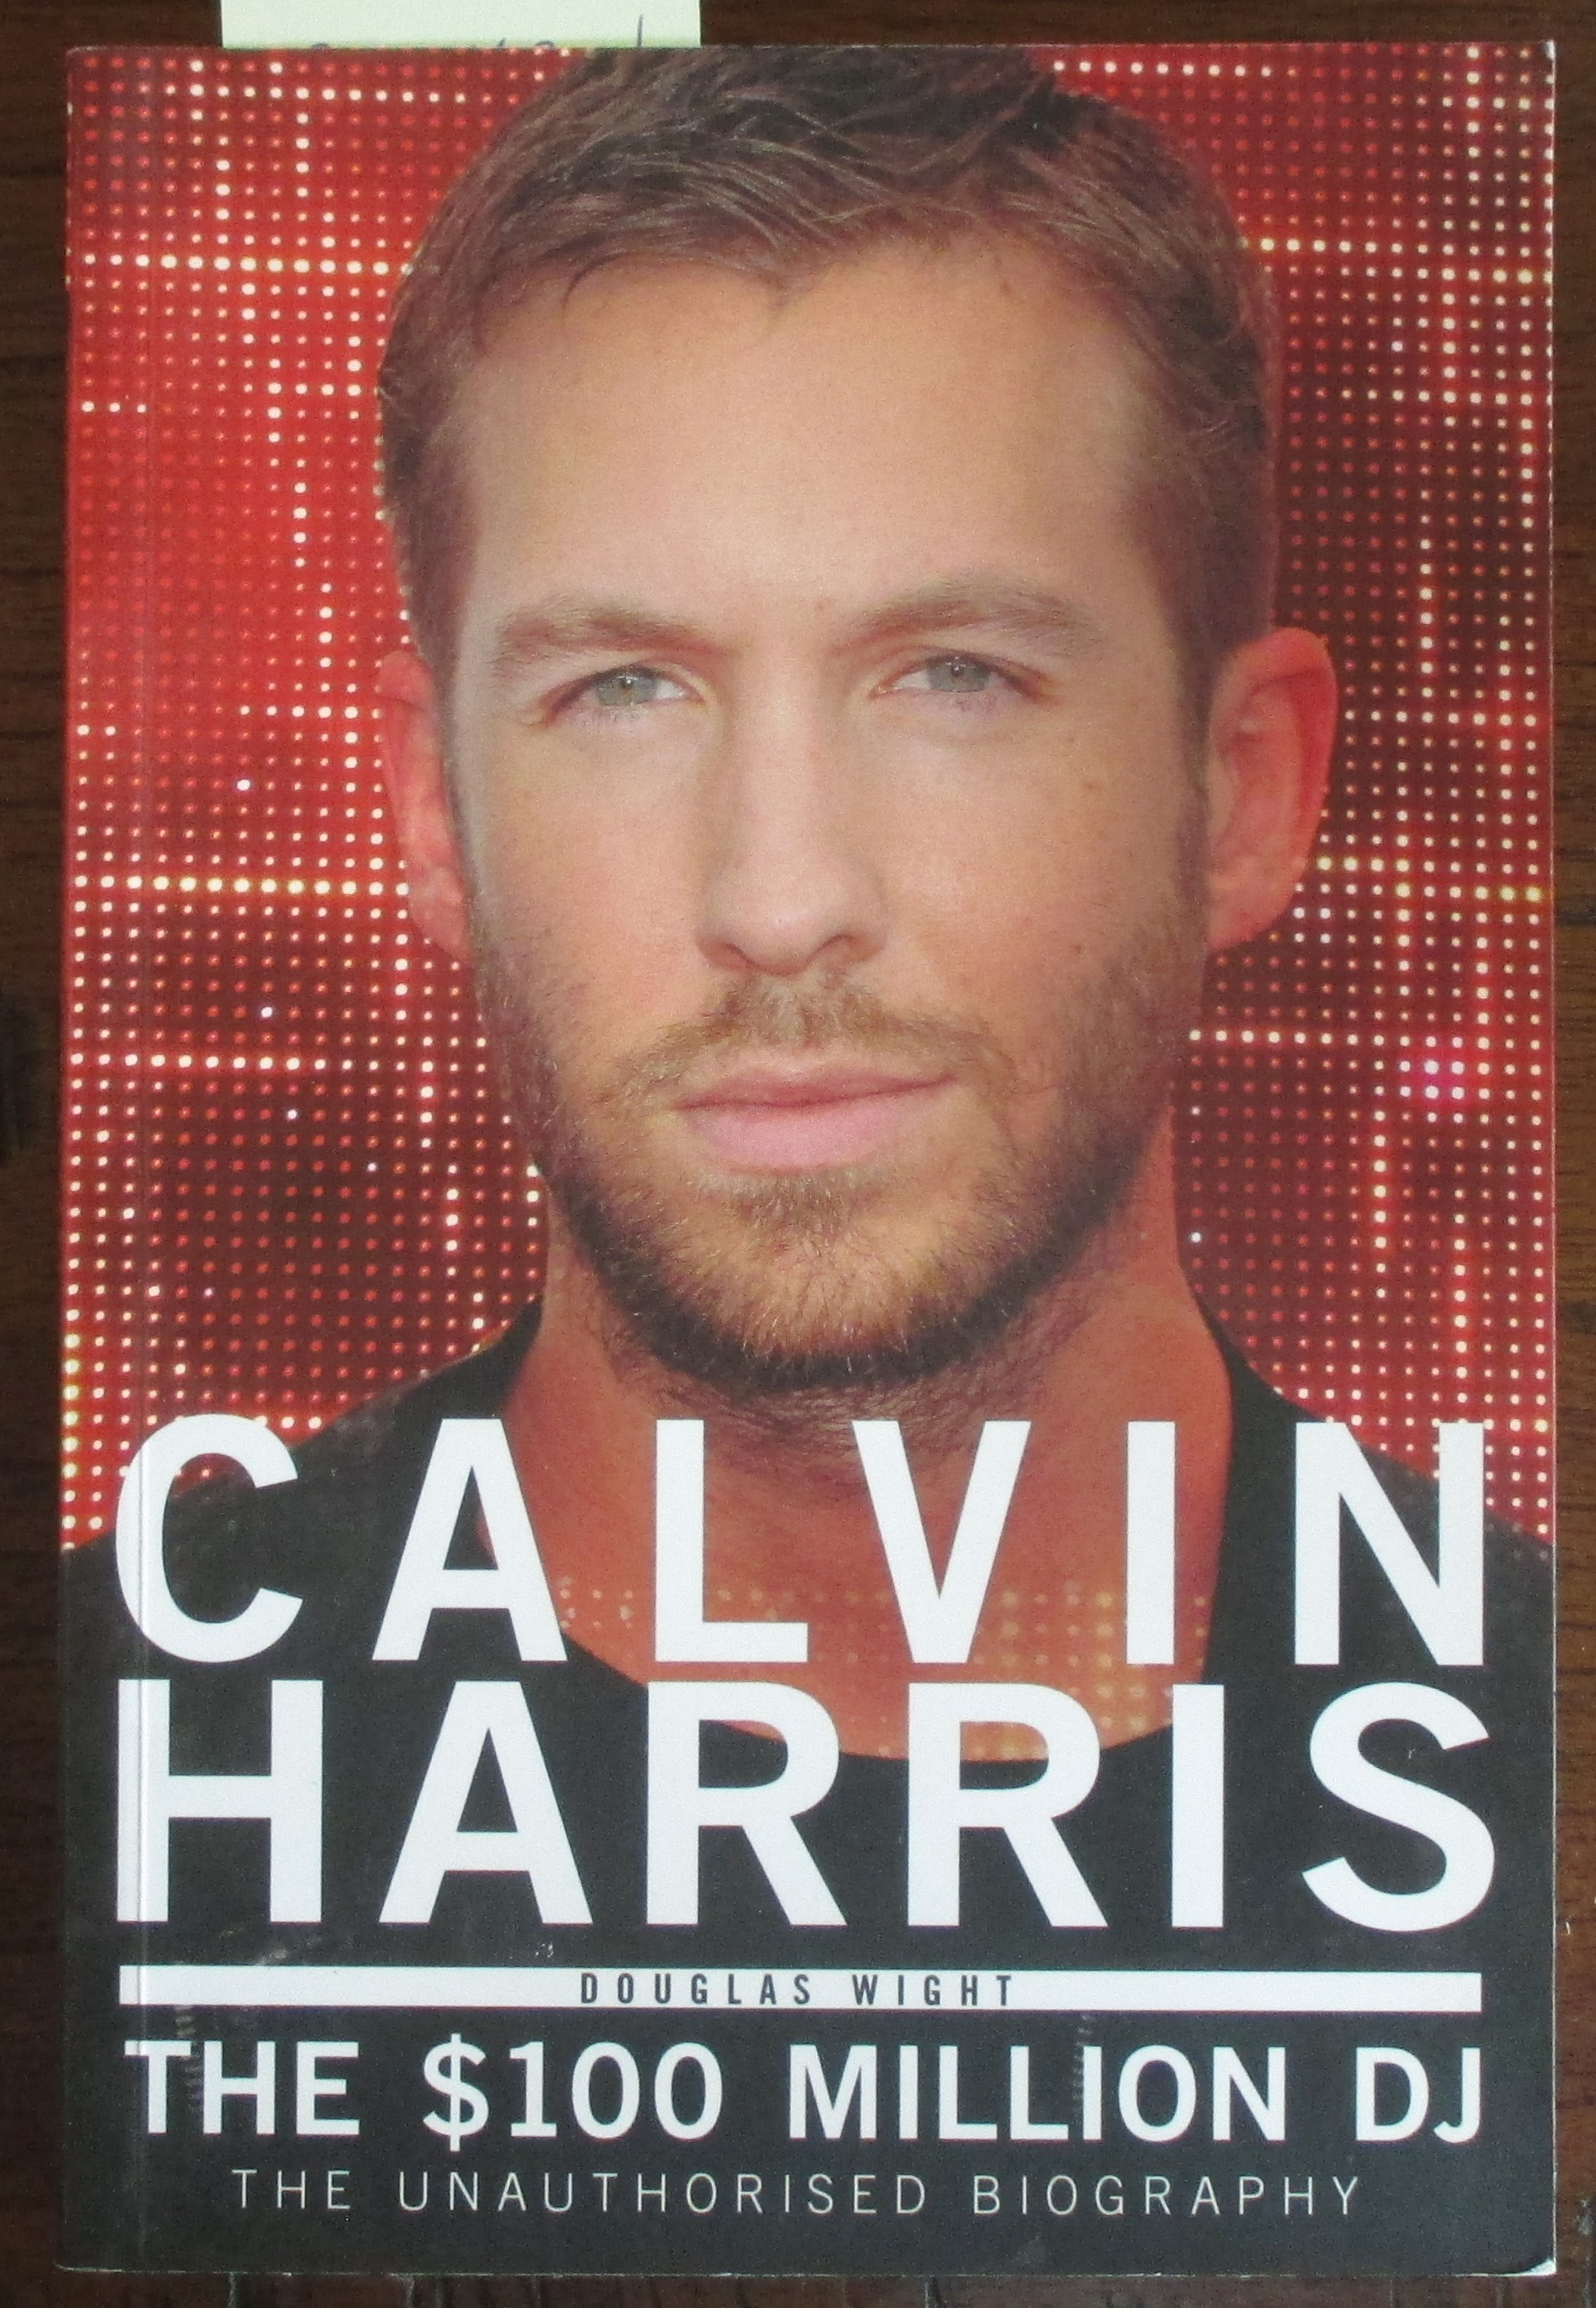 Image for Calvin Harris: The $100 Million DJ - The Unauthorised Biography